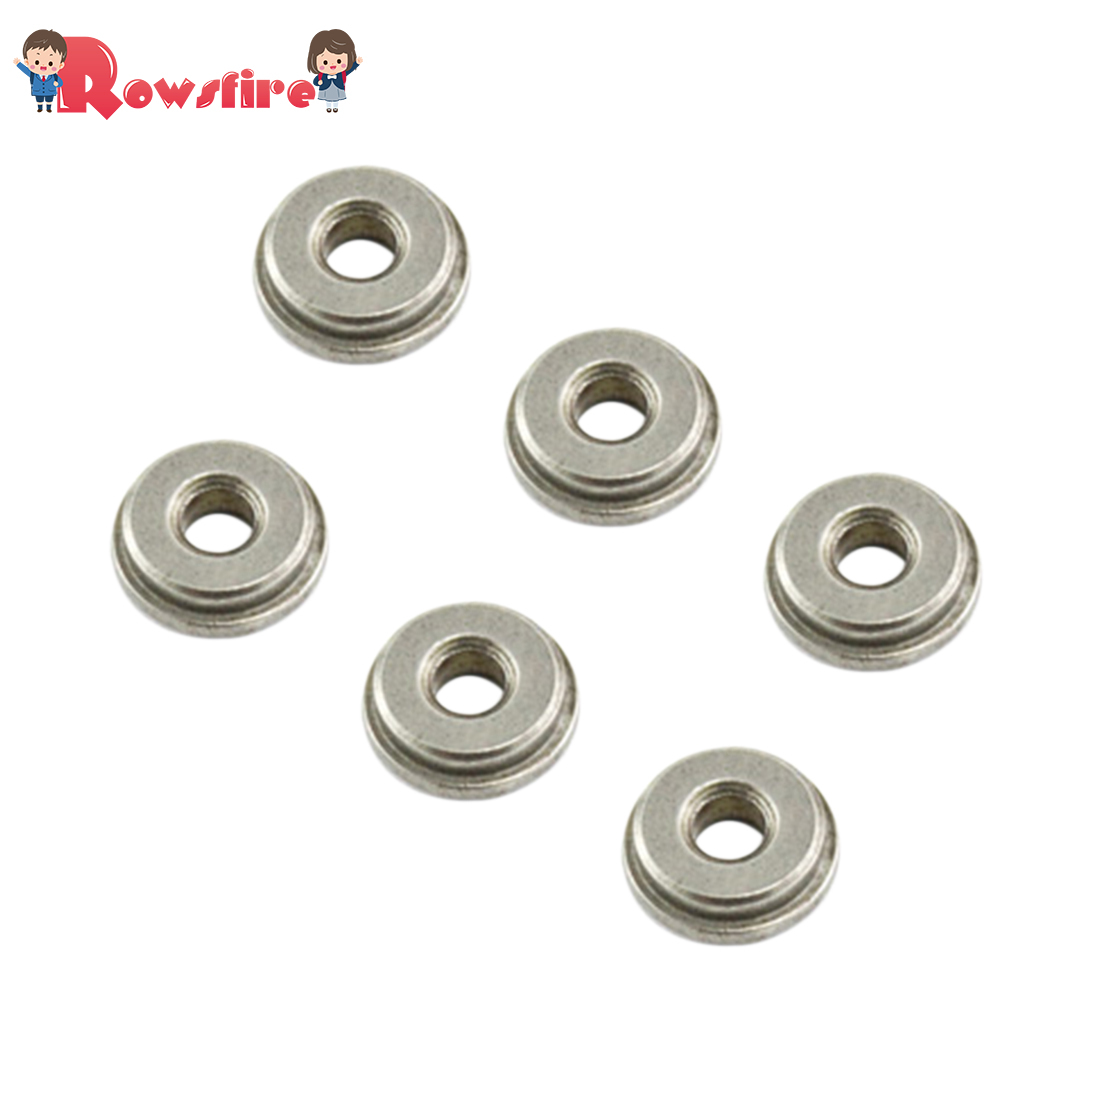 DIY 8mm SHS Steel Oil Tank Bushings For Metal Gearbox Modification Not Suit For Water Bomb Box